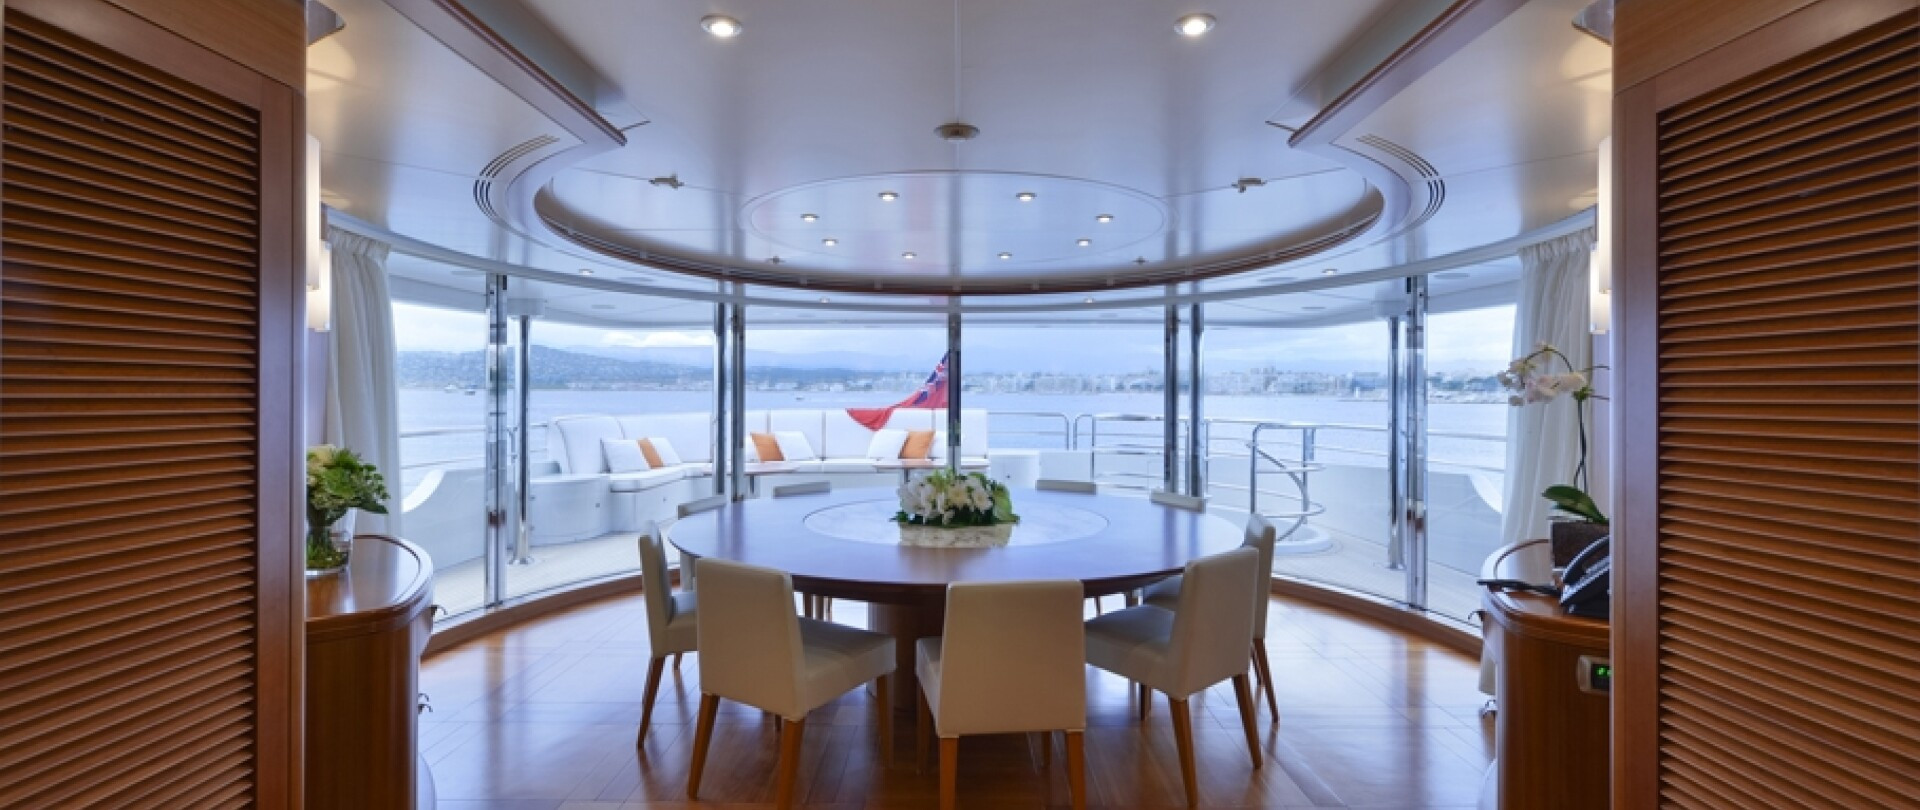 BLUE VISION Available for Mediterranean Charters This Summer photo 3